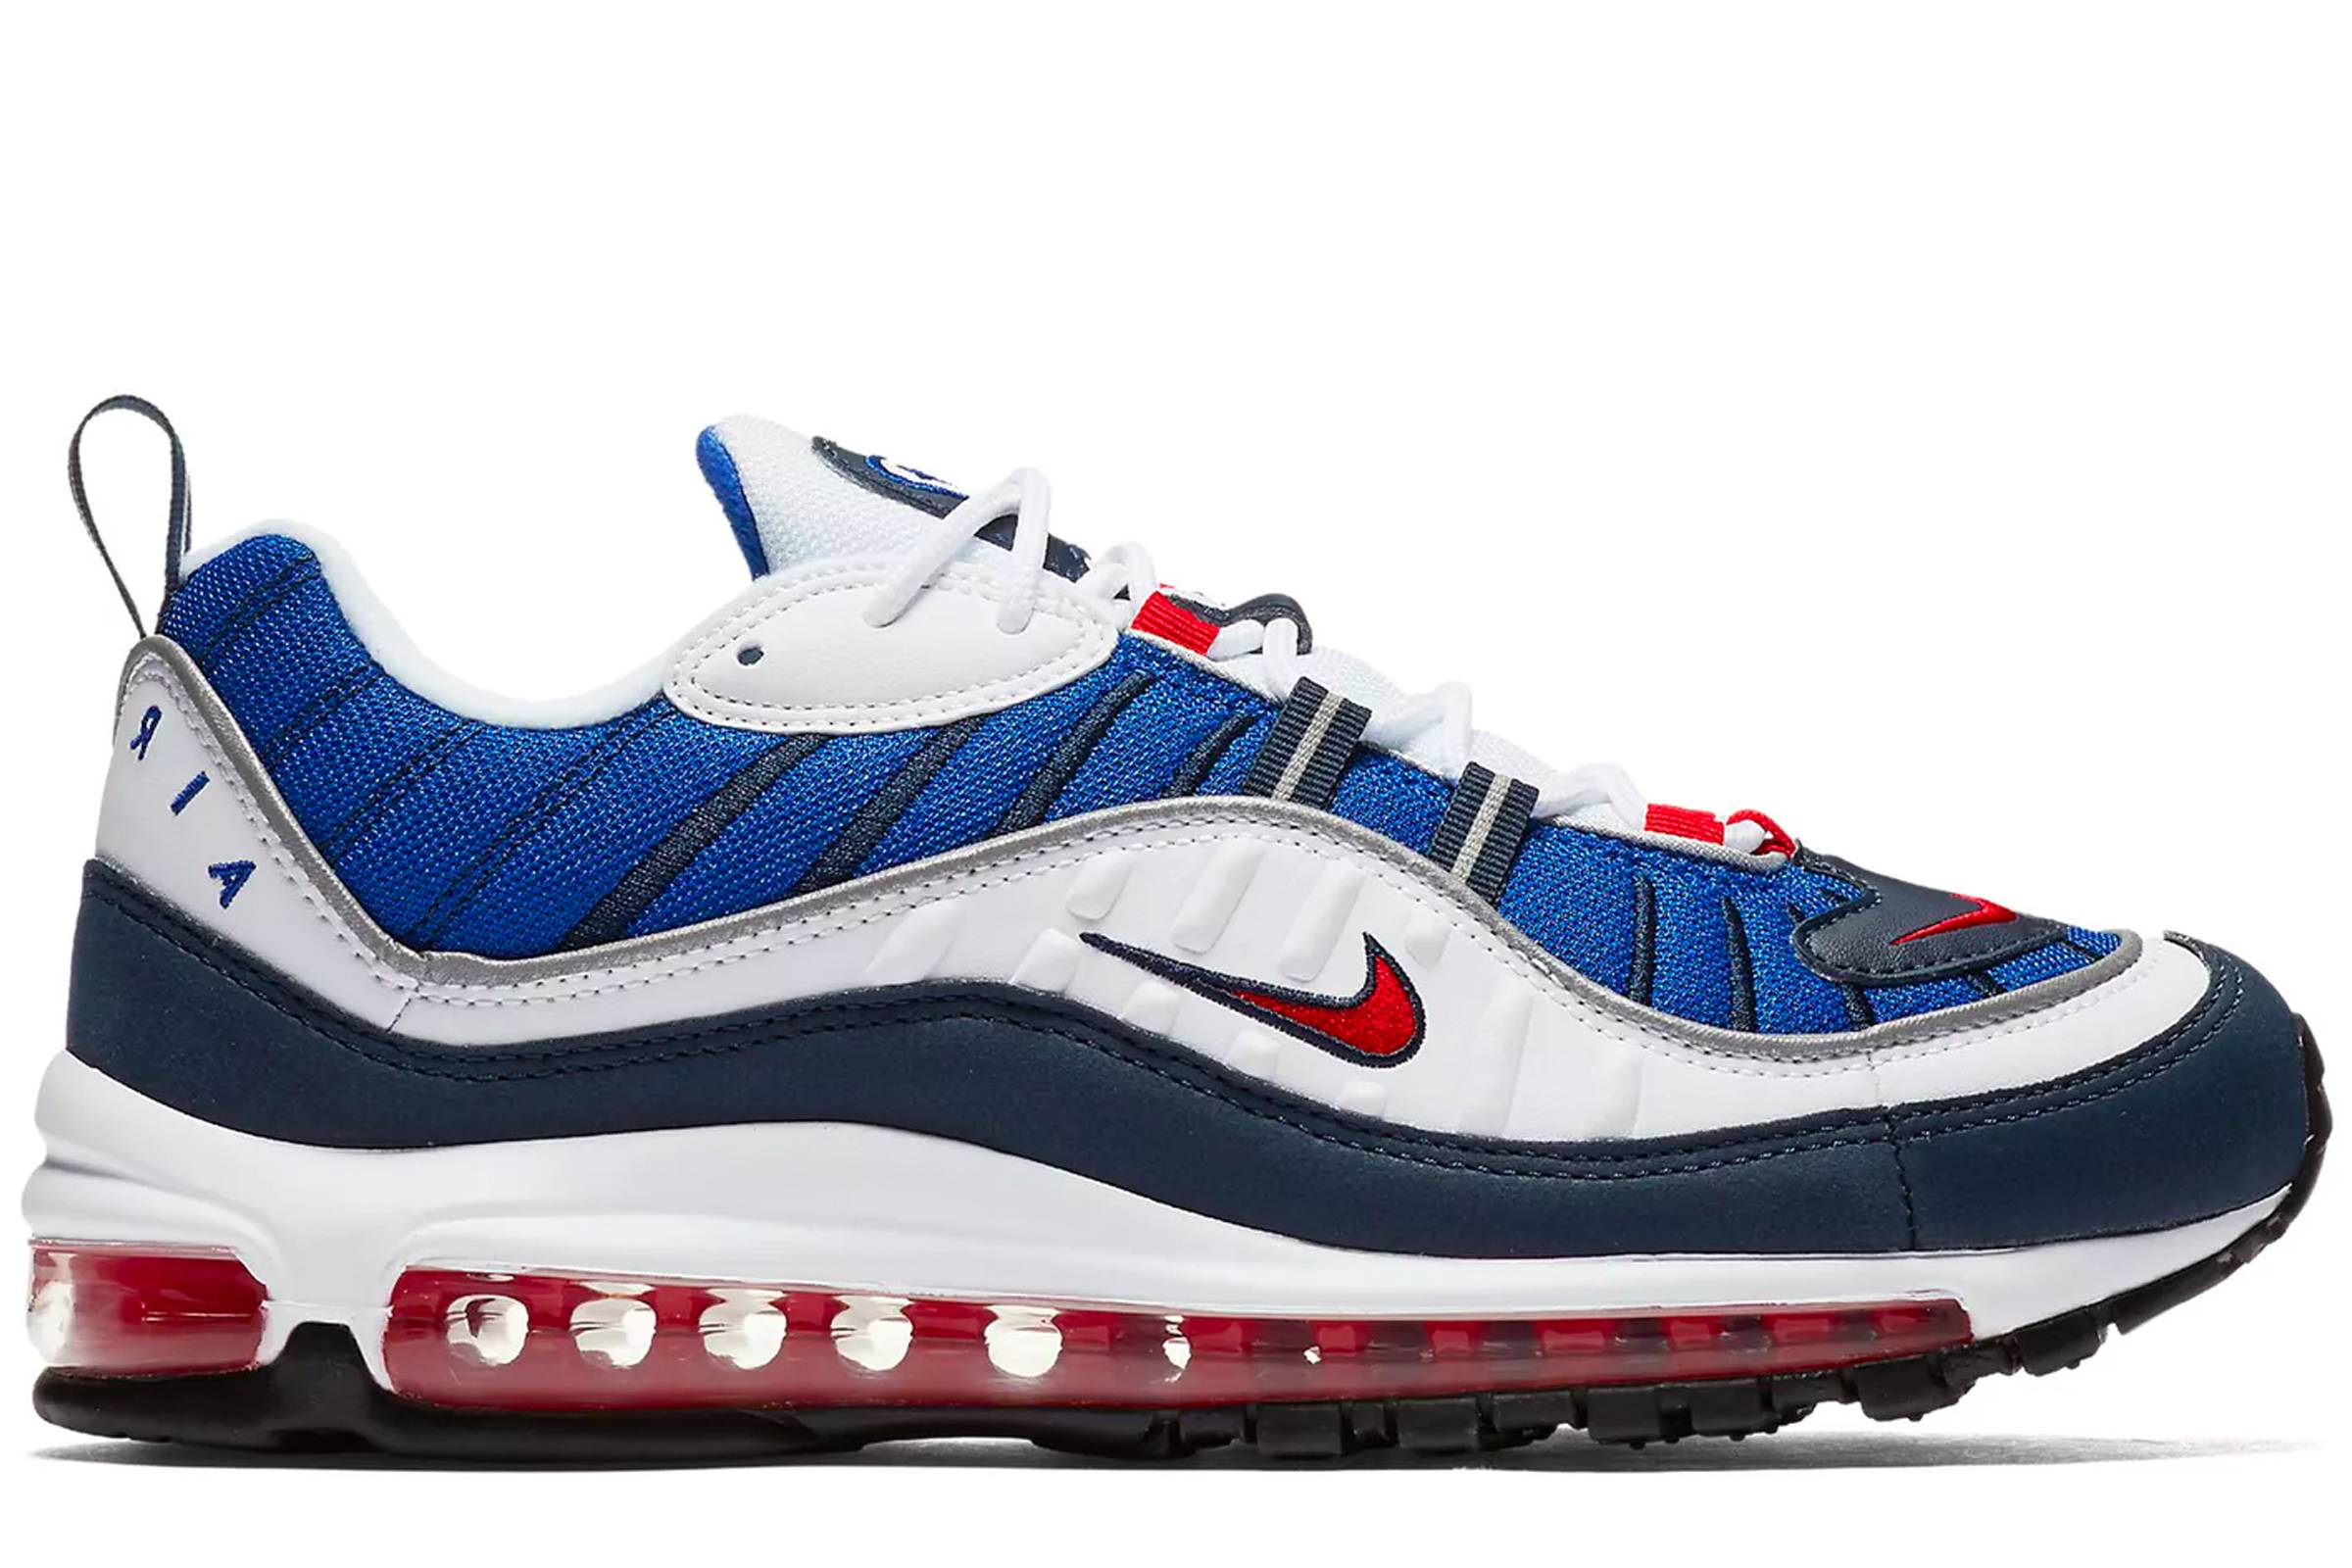 Max The Nike's Child 98 History Air A Of Problem WpqZZS0fF